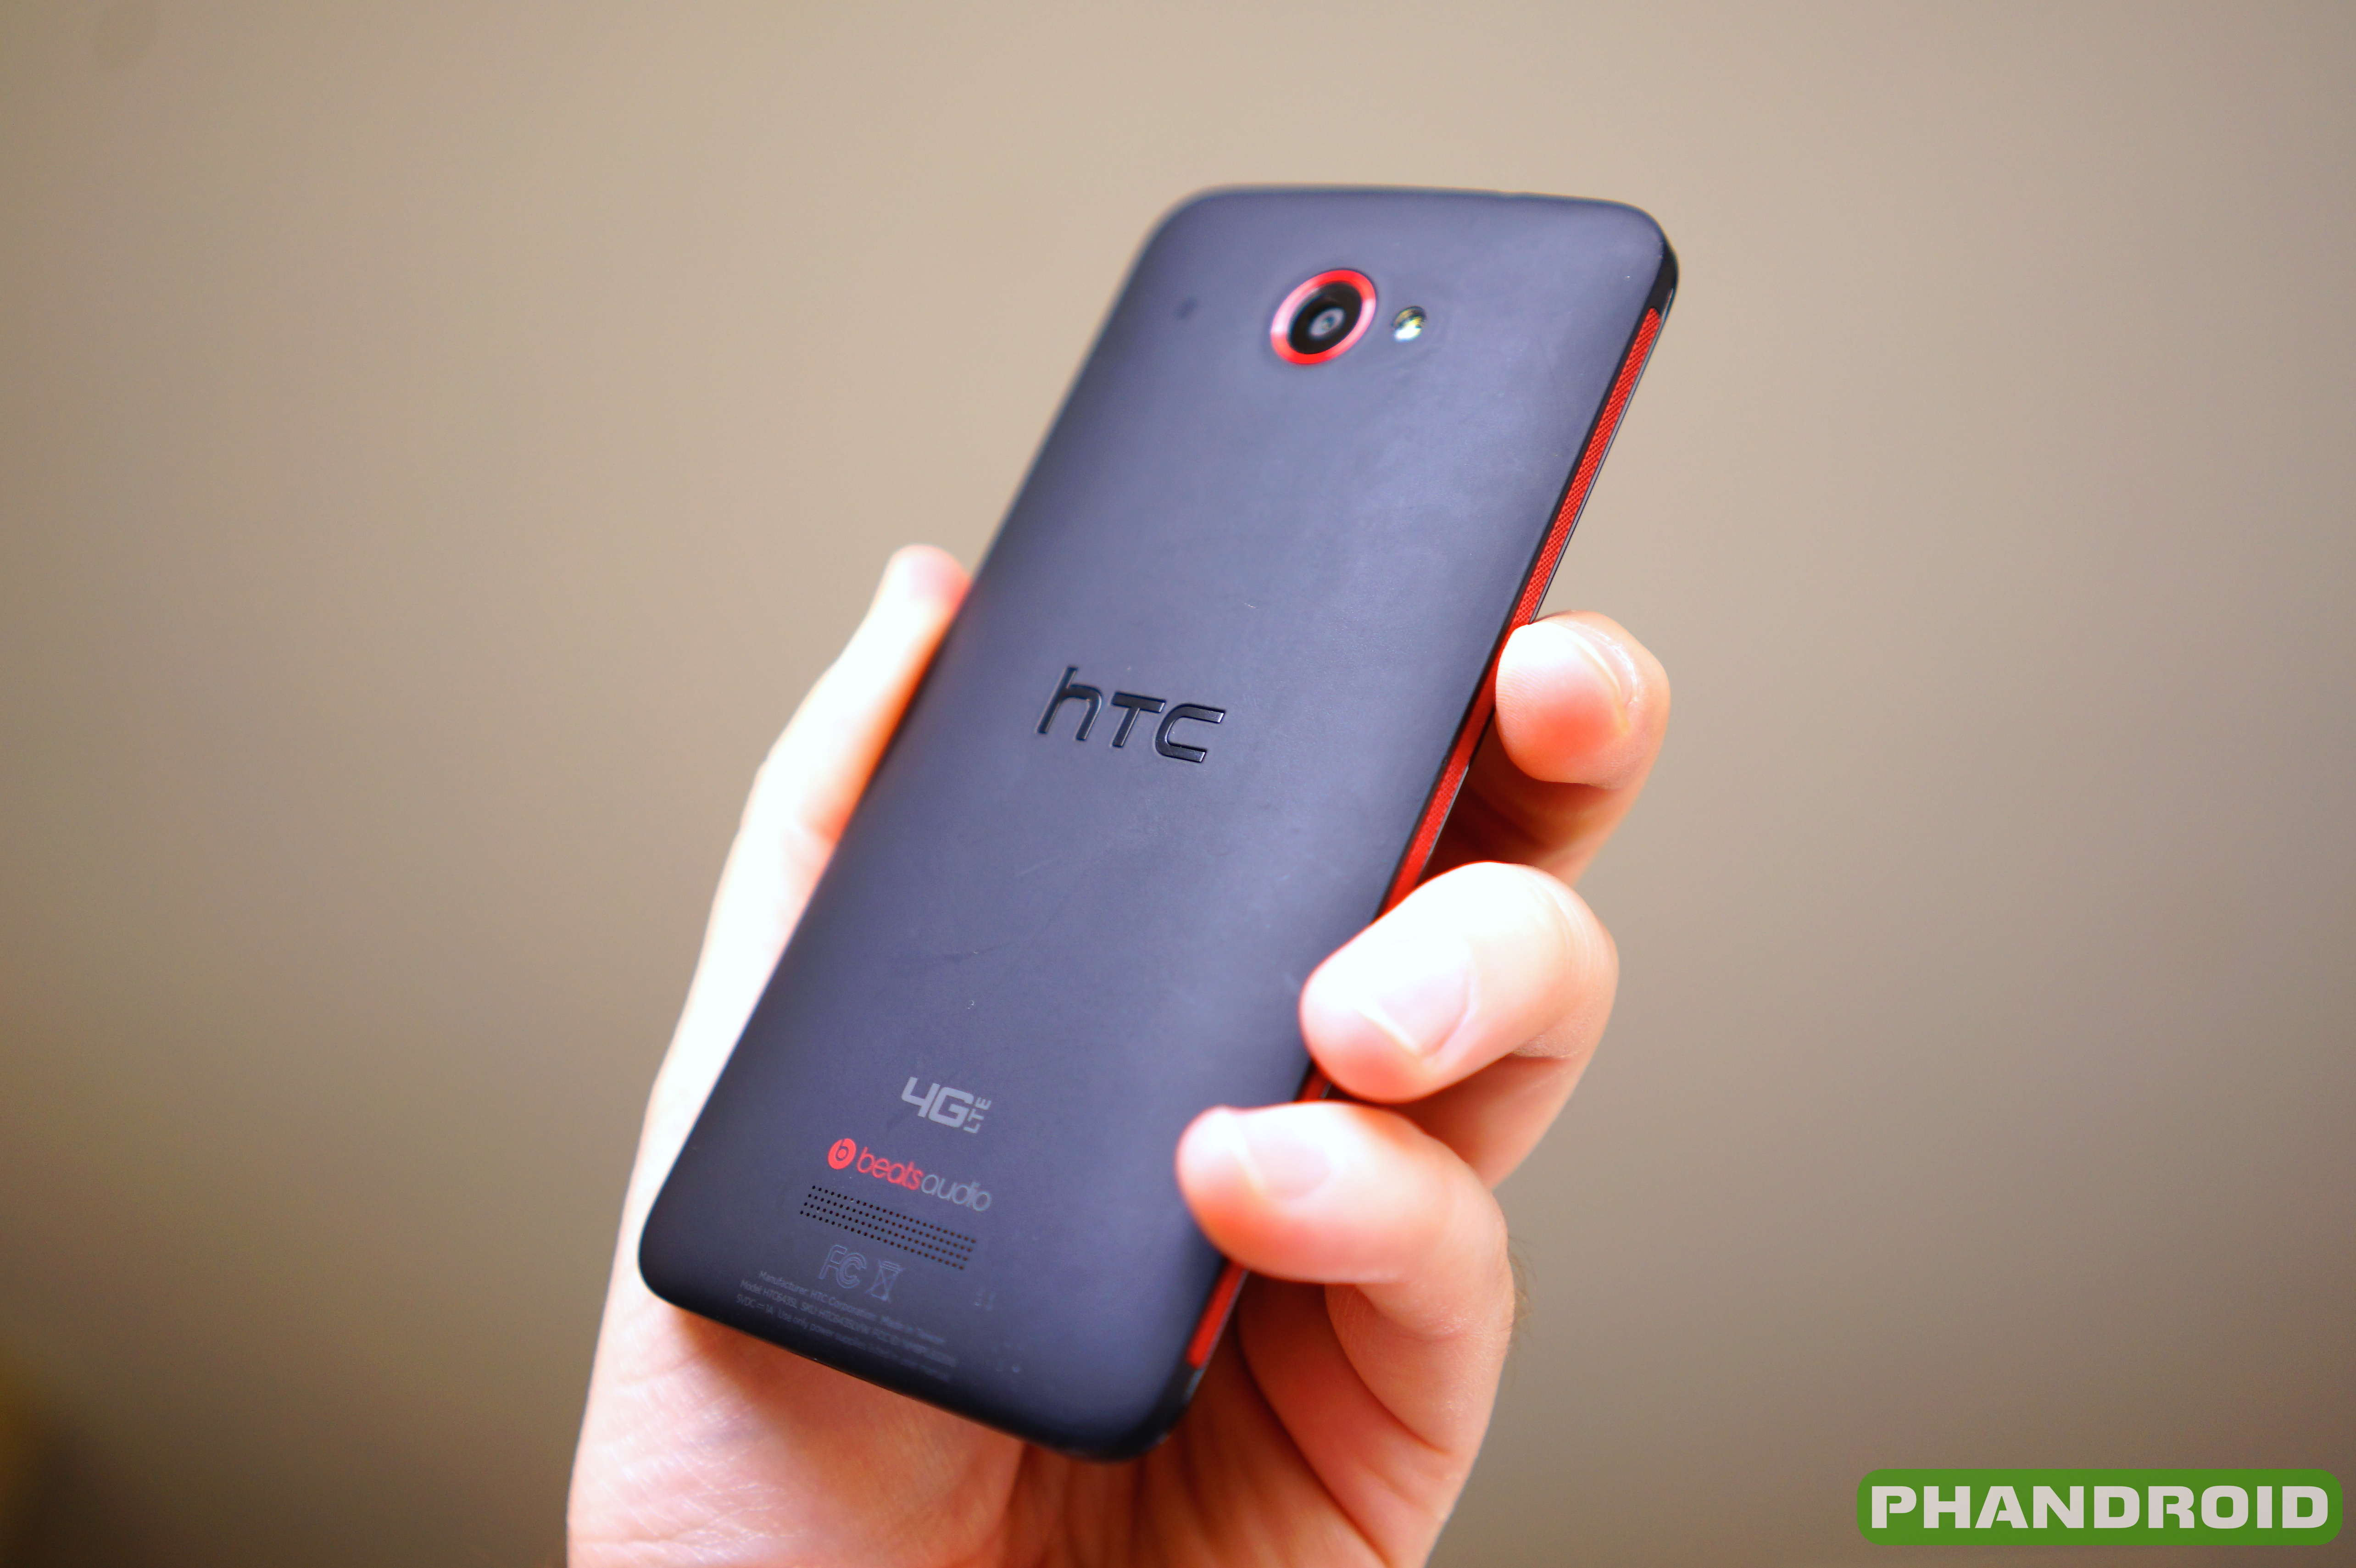 4978edb9656a0 HTC Droid DNA receiving Android 4.4.2 KitKat and Sense 5.5 on April 24th